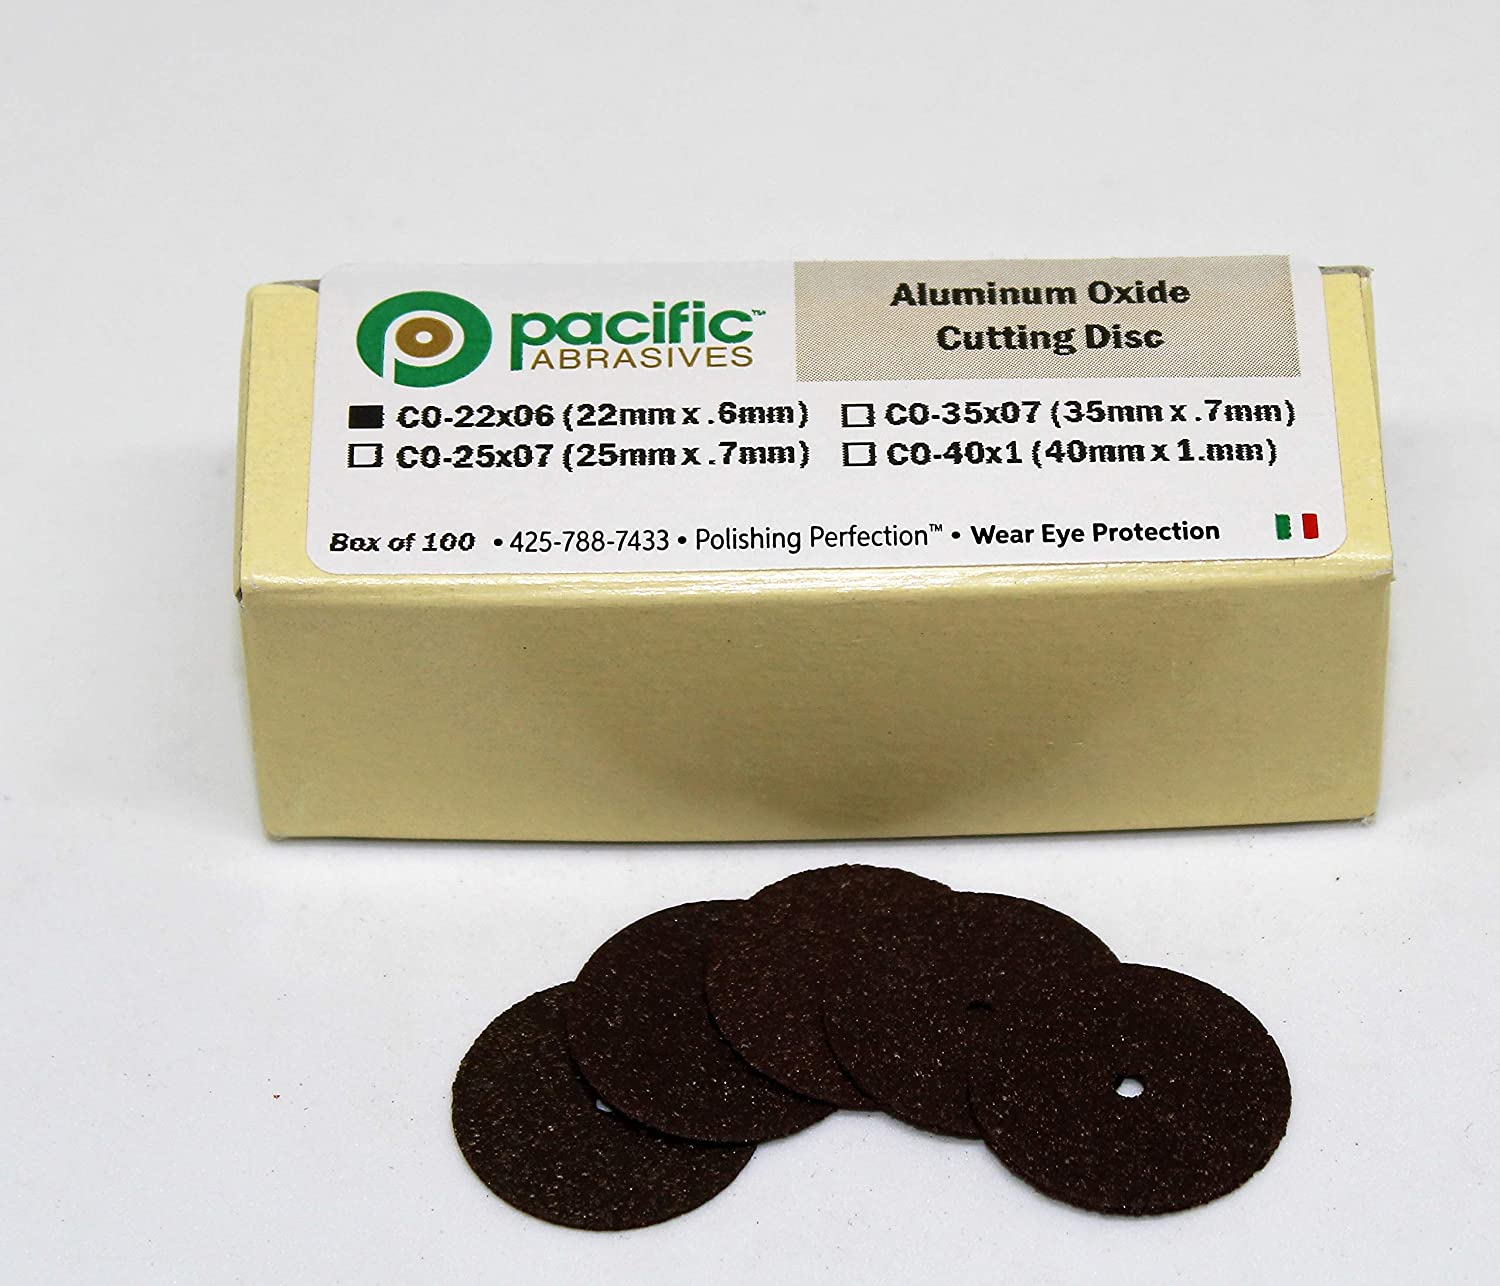 Pack of 100 Pacific Abrasives CO-22x0.6 Aluminum Oxide Cutting Discs